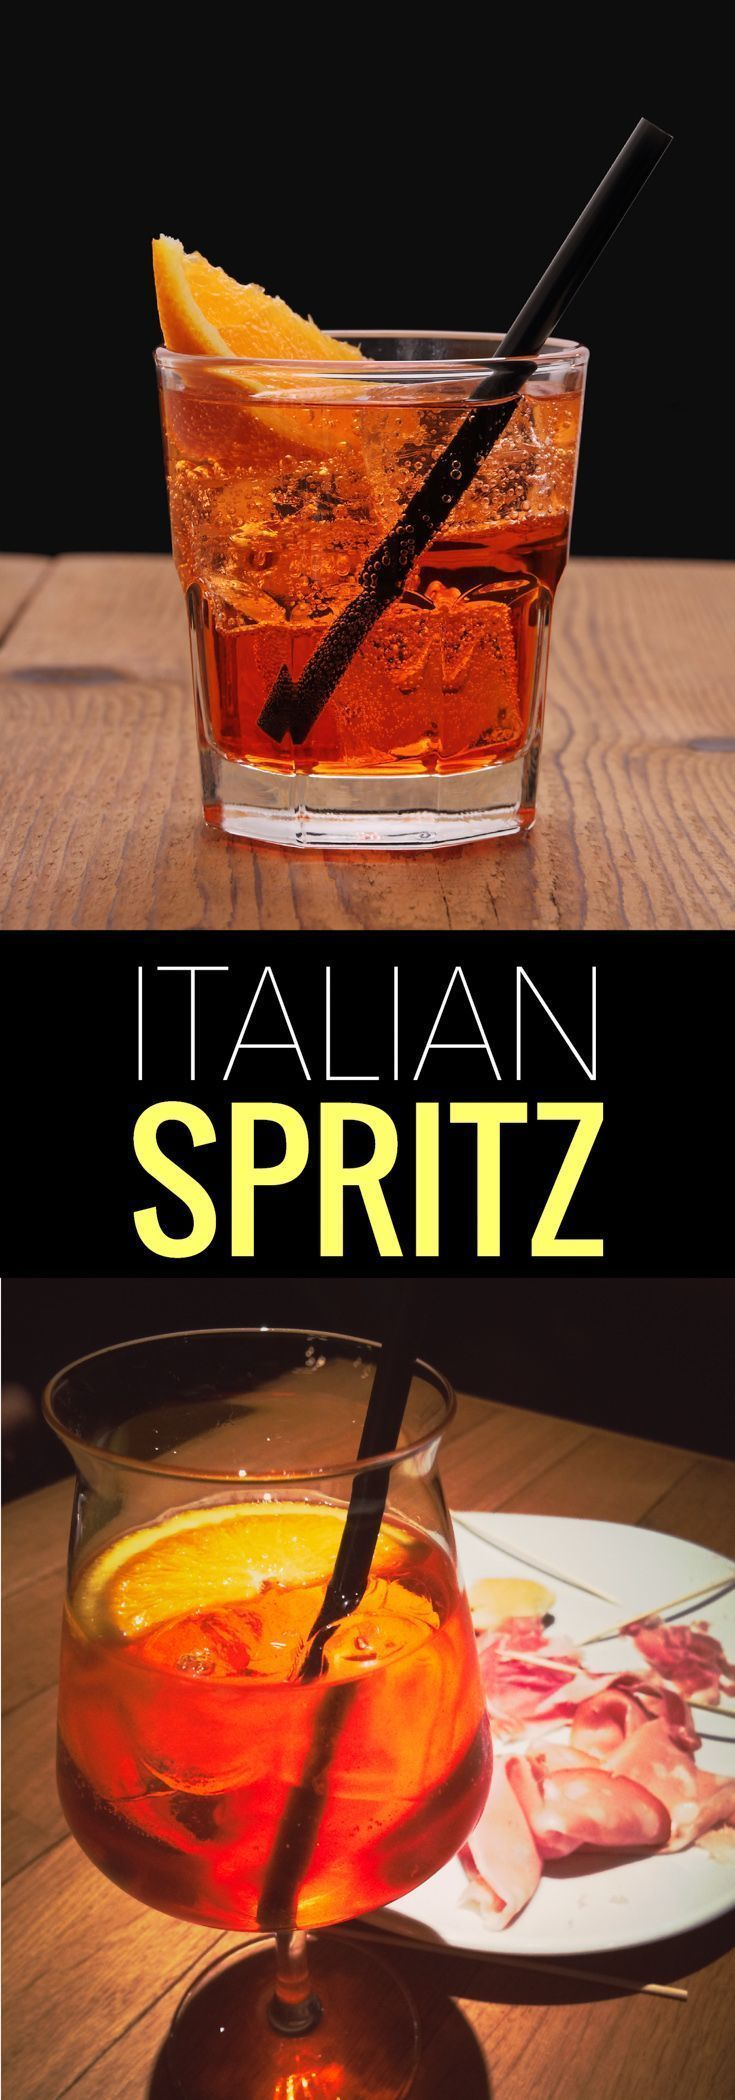 The most popular drink in Italy is the Spritz cocktail, find out why it's so popular and how to make one. ~ http://www.baconismagic.ca